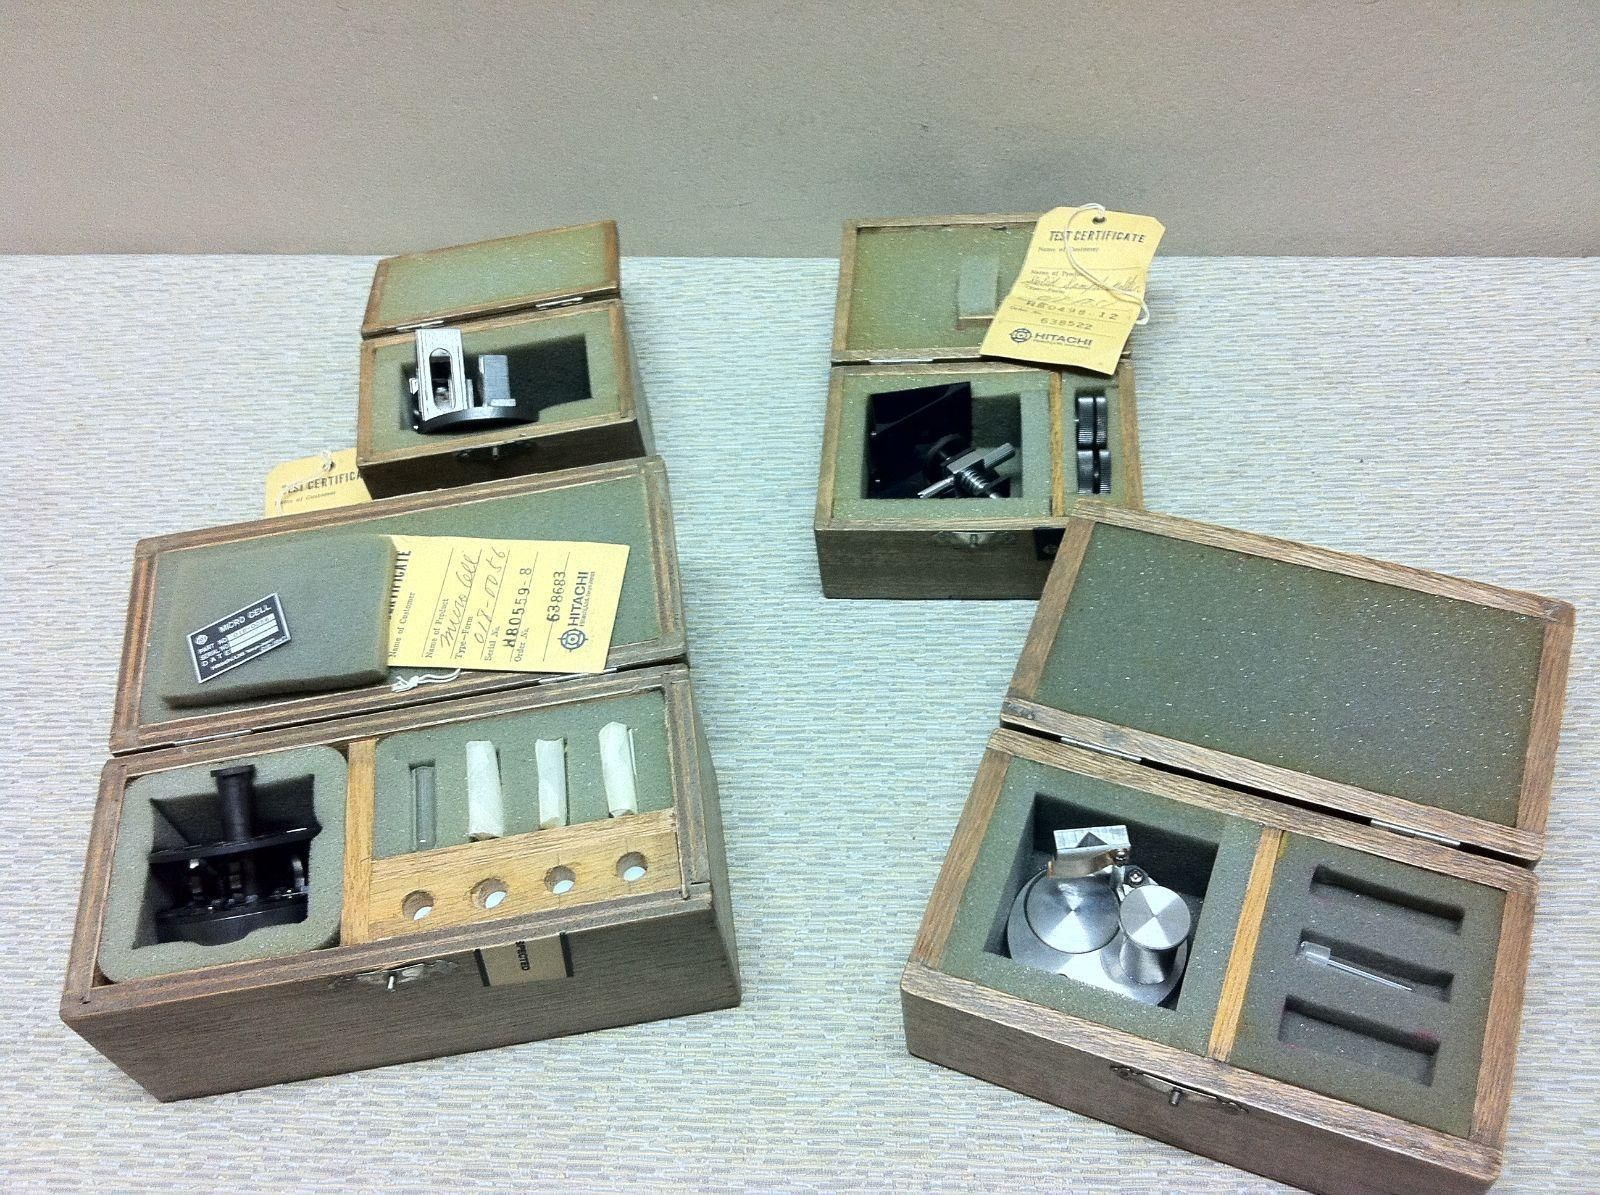 (3) Vintage Hitachi sample holders for Perkin Elmer MPF-2A spectrofluorometer